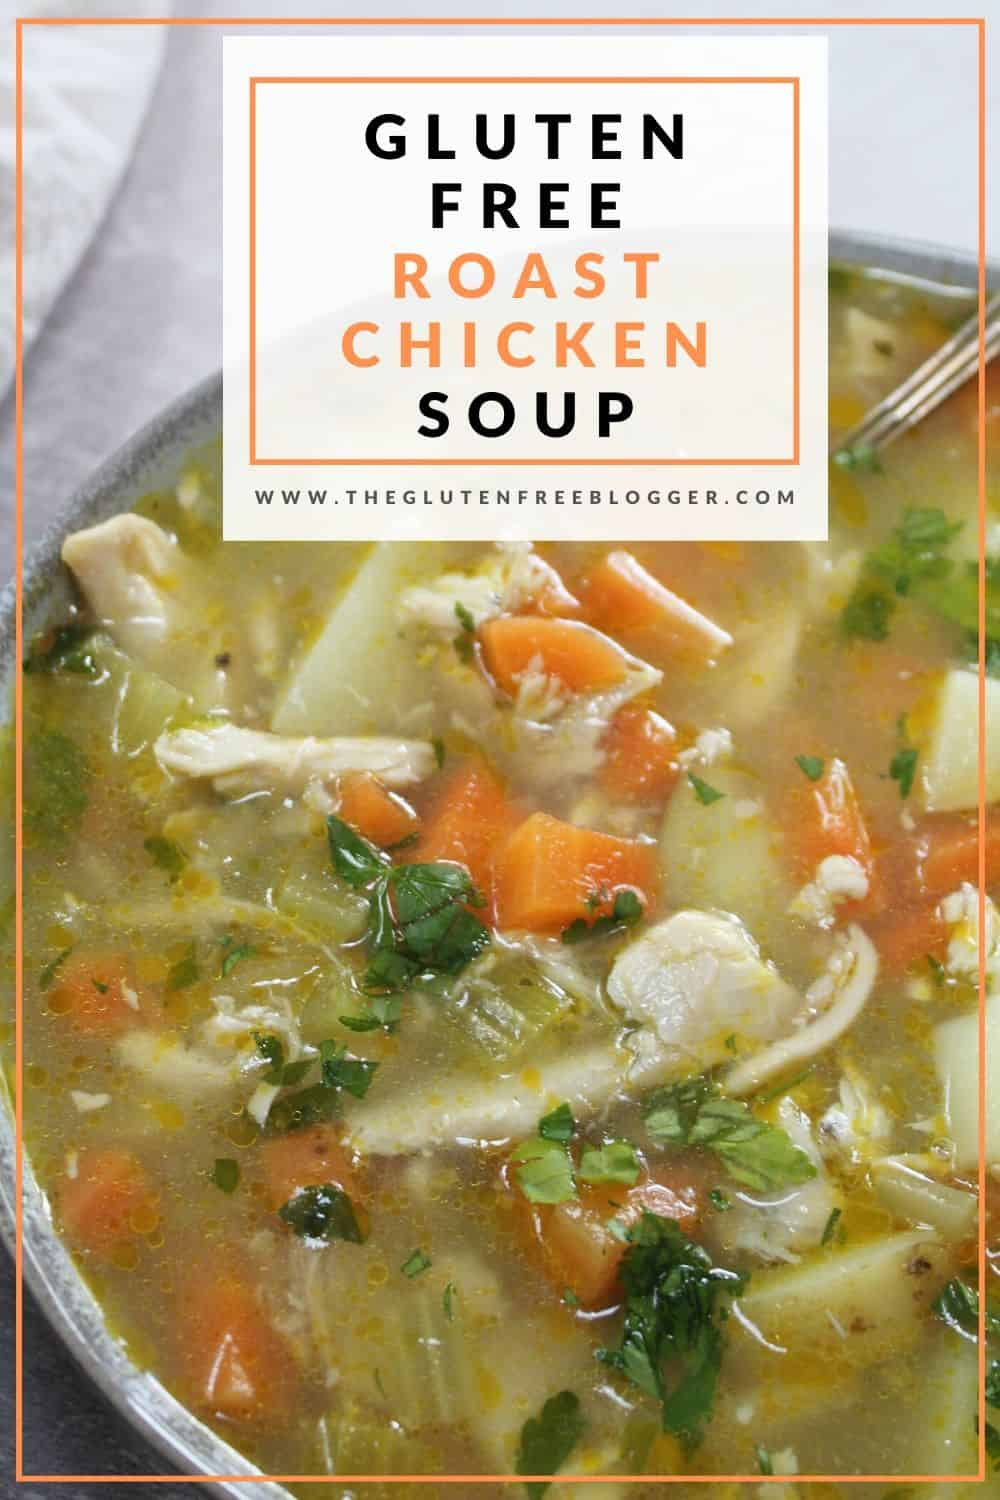 gluten free roast chicken soup recipe batch cooking freezer meals immune boosting dairy free